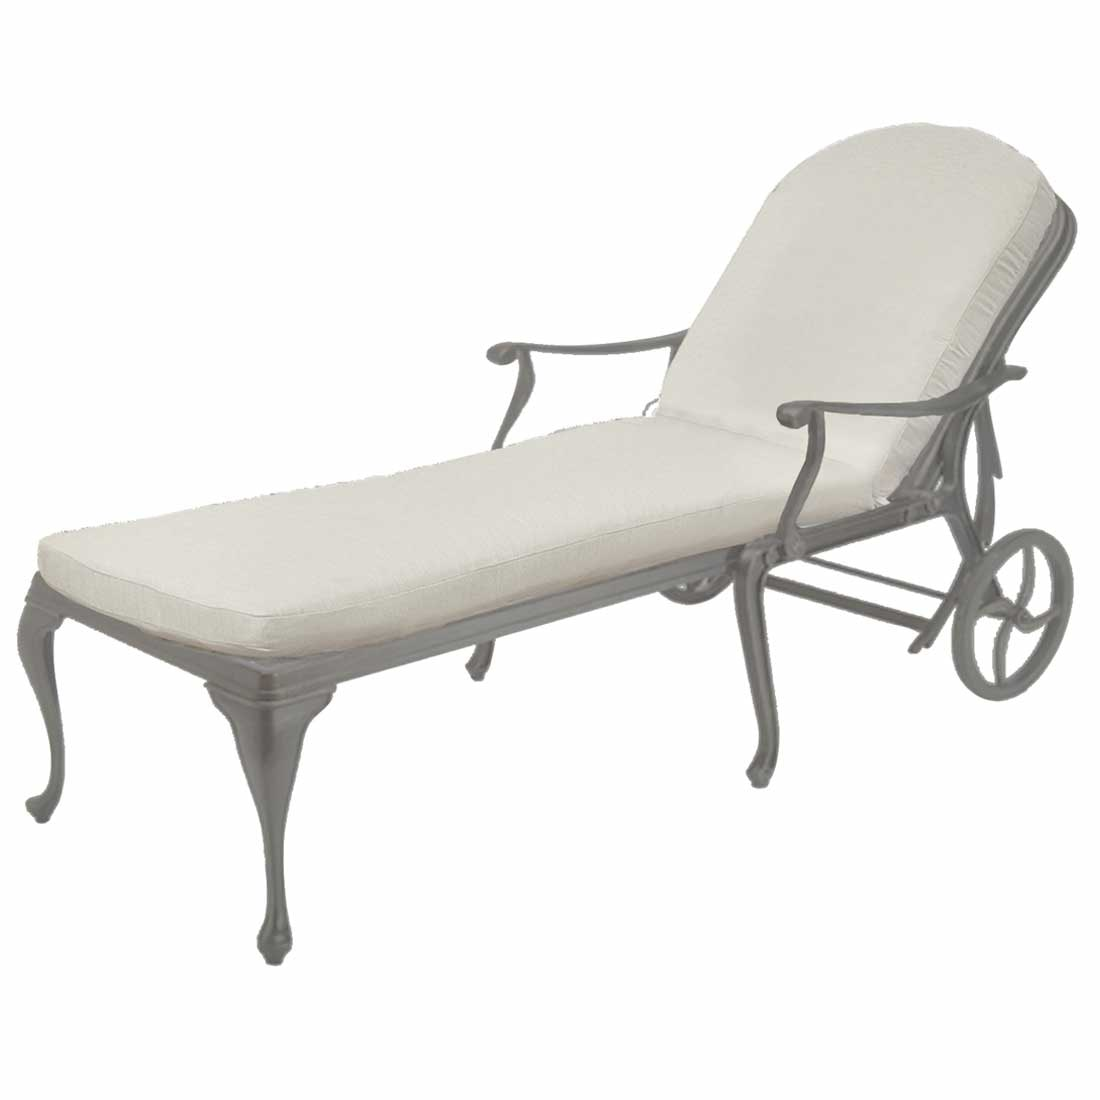 summer chaise lounge chairs medical chair alarms classics outdoorpatio provance 405331